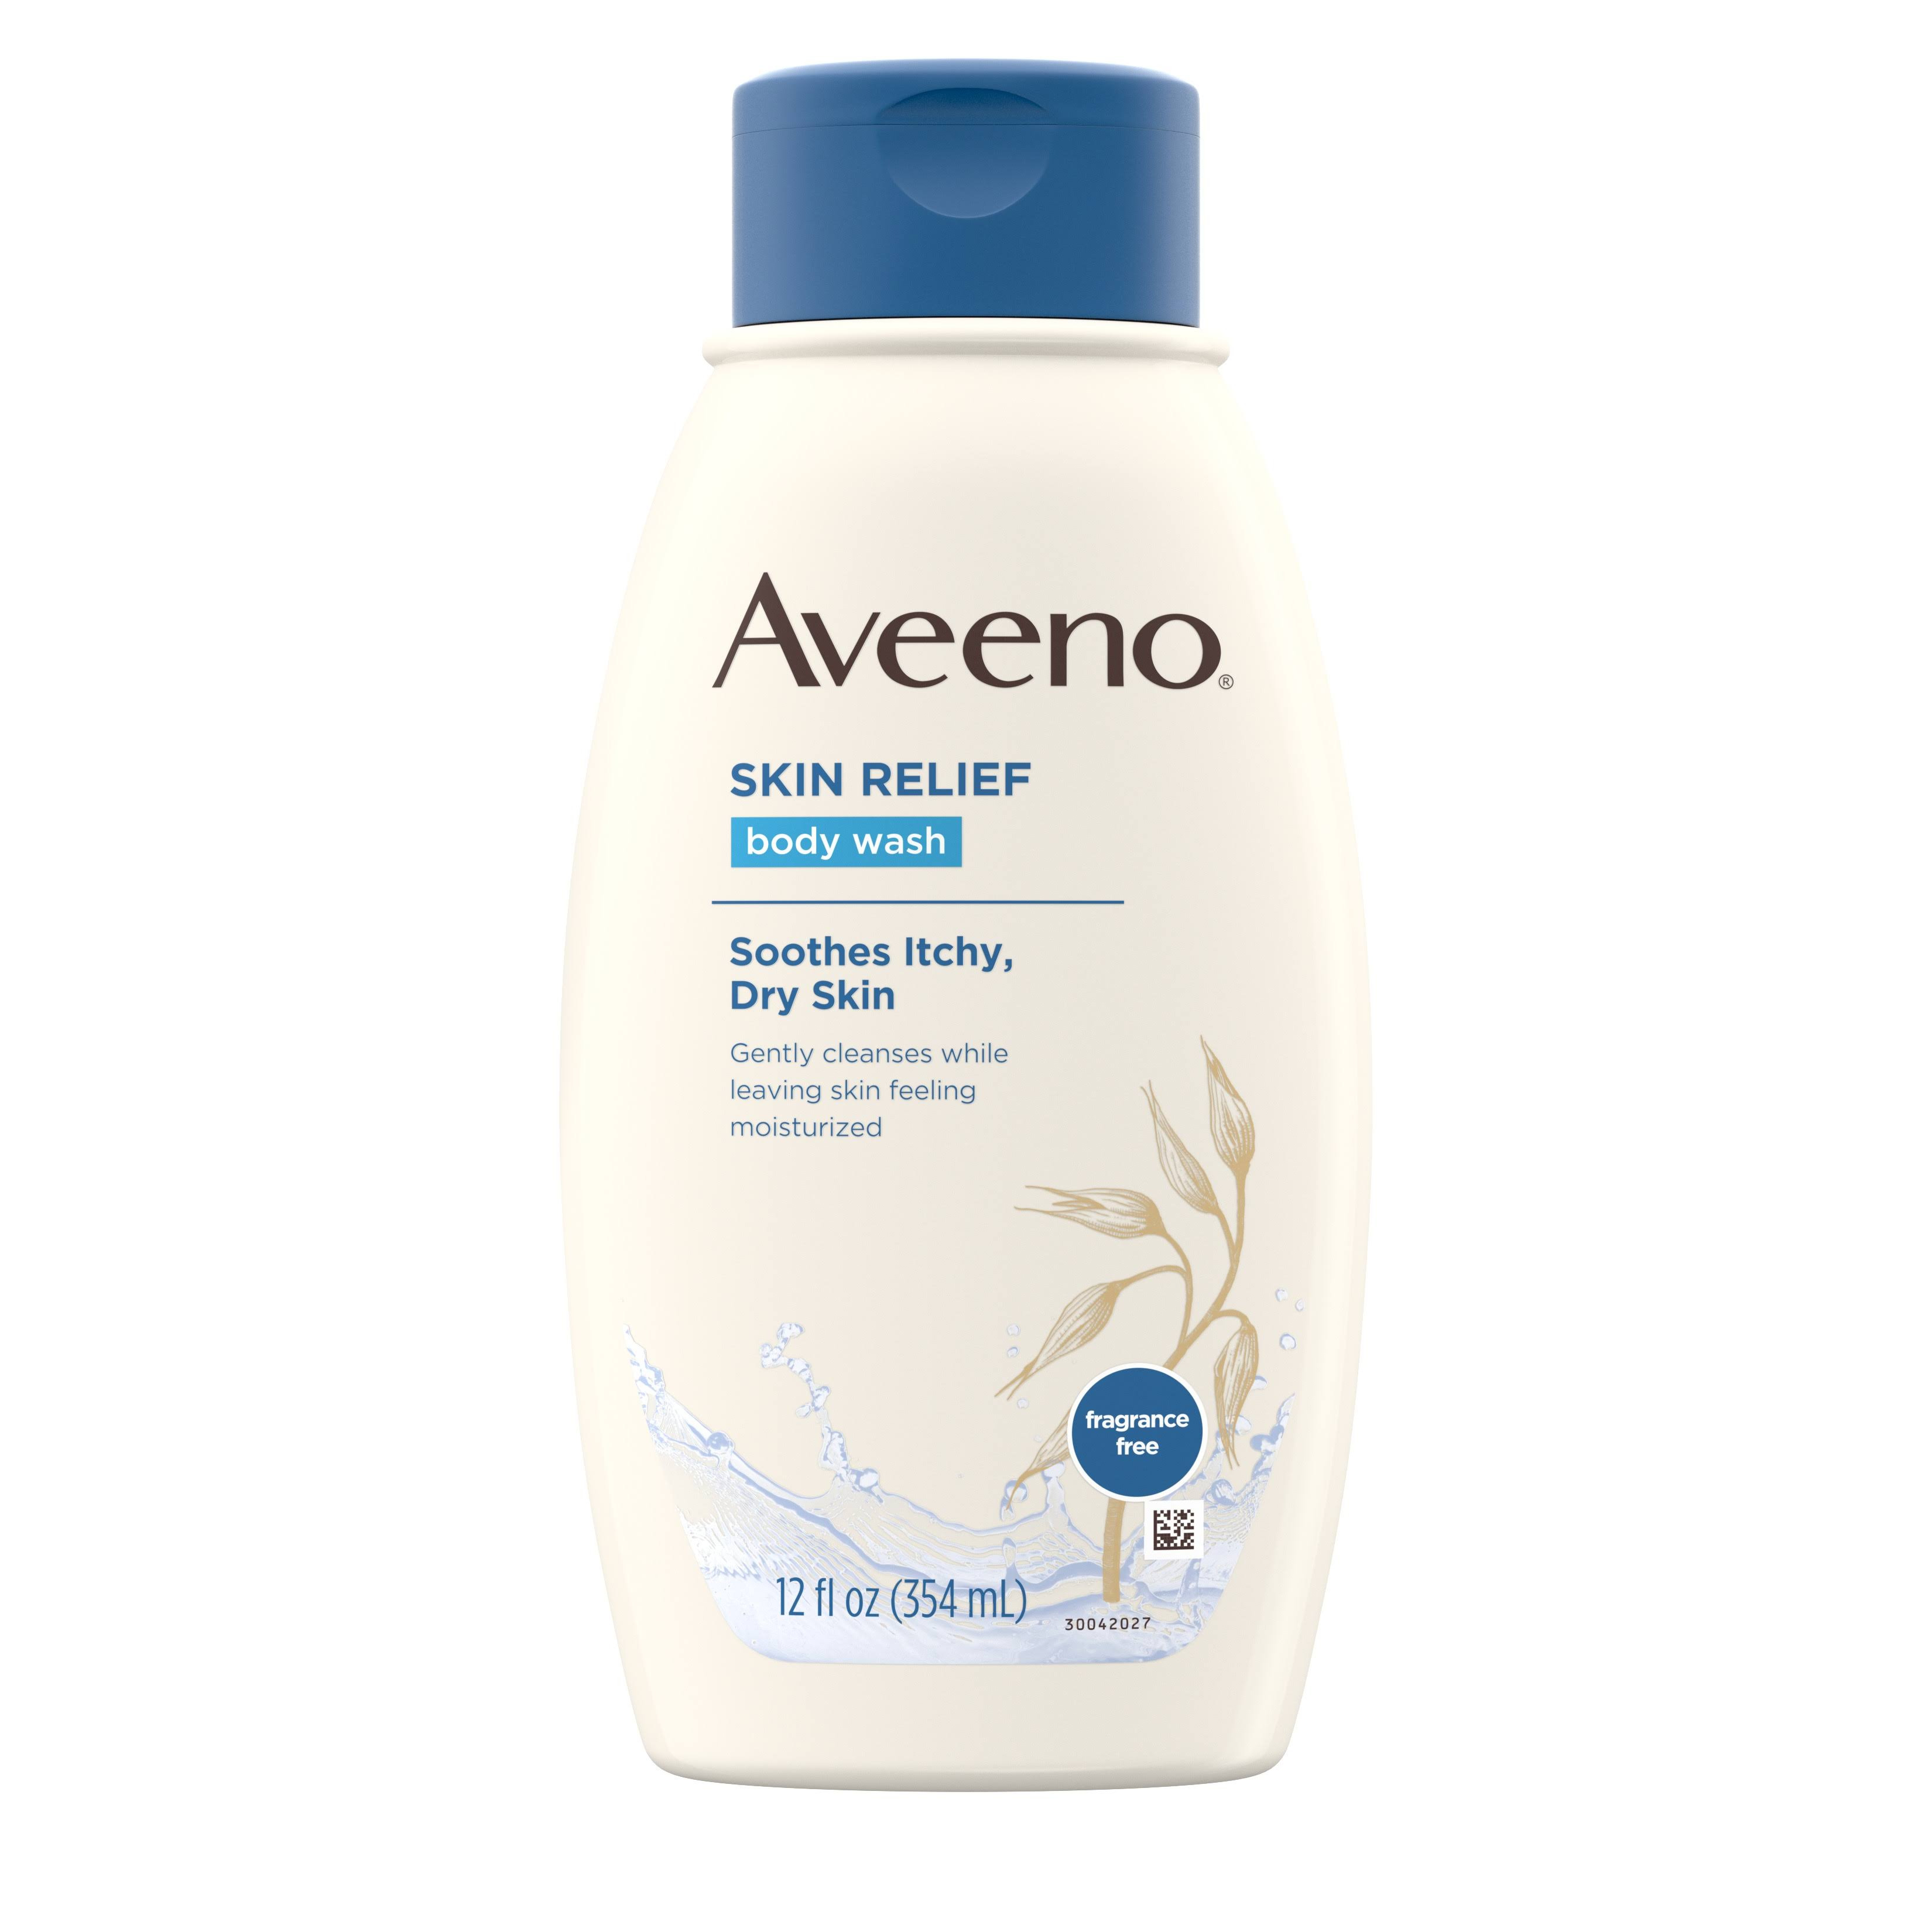 Aveeno Active Naturals Skin Relief Body Wash - 12 fl oz bottle